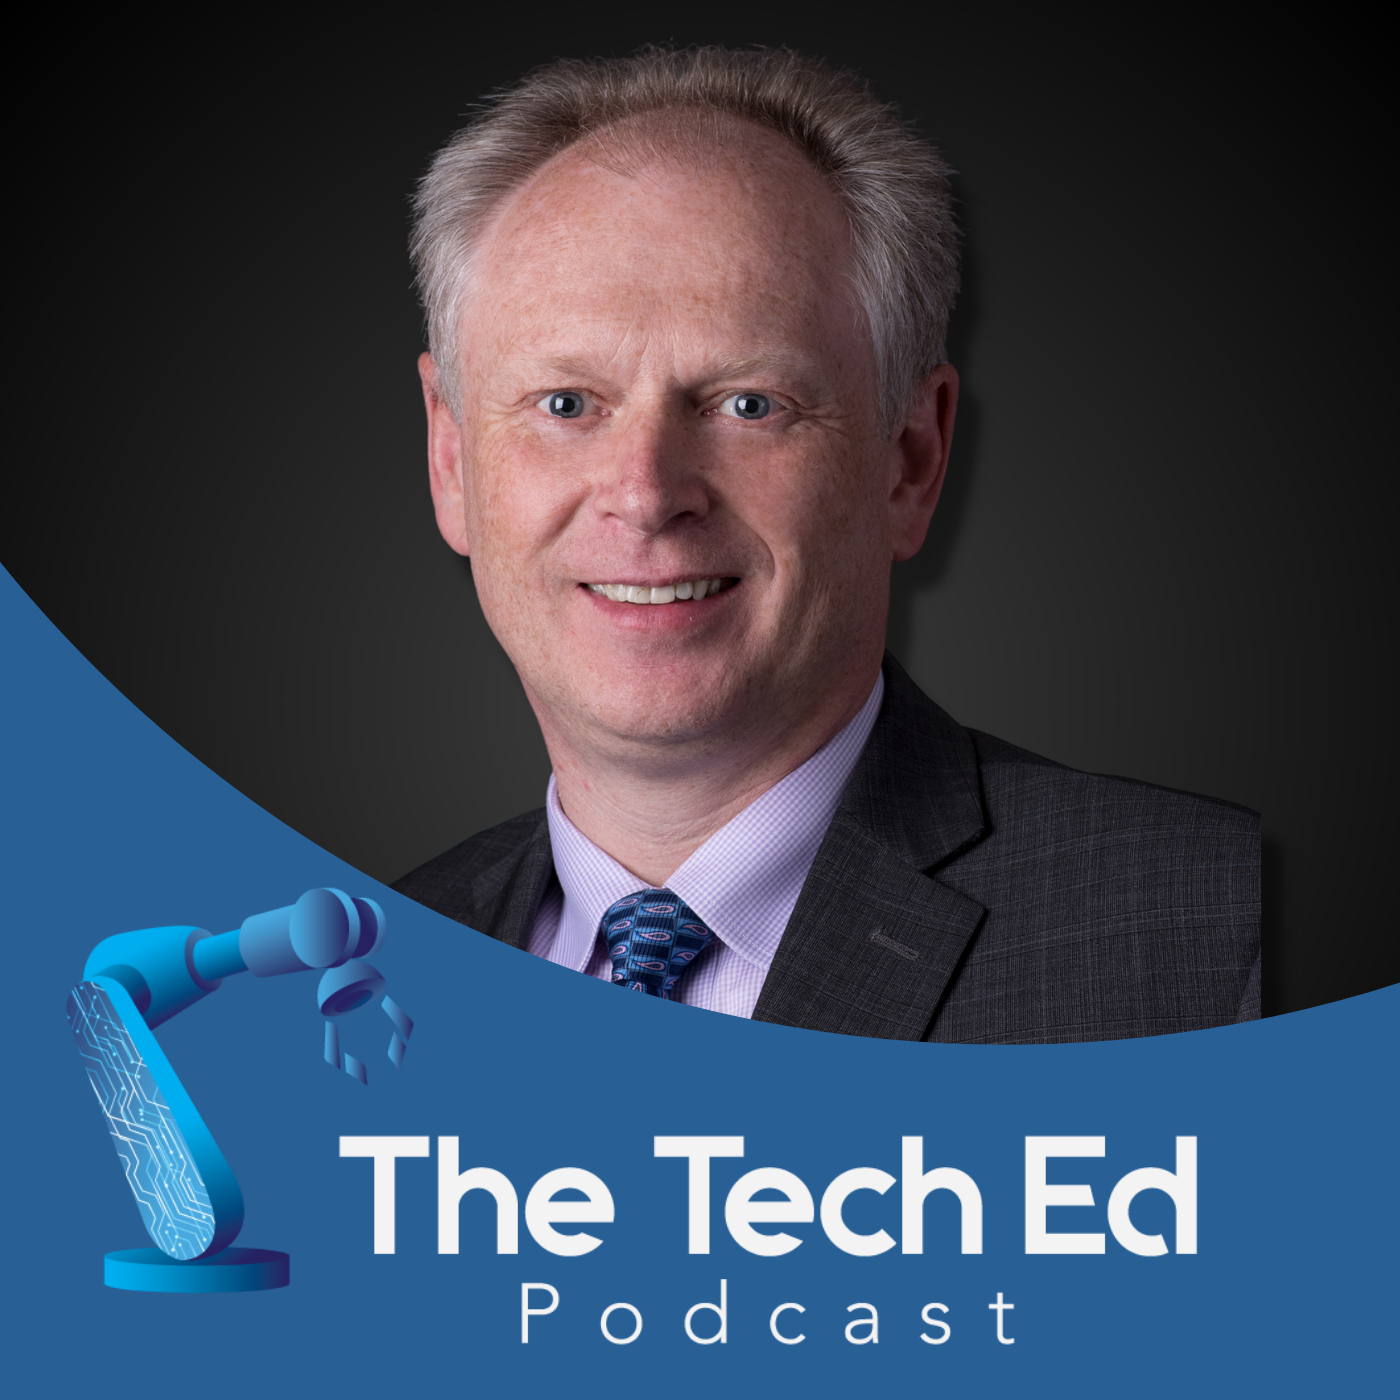 Peter Anderson on The TechEd Podcast